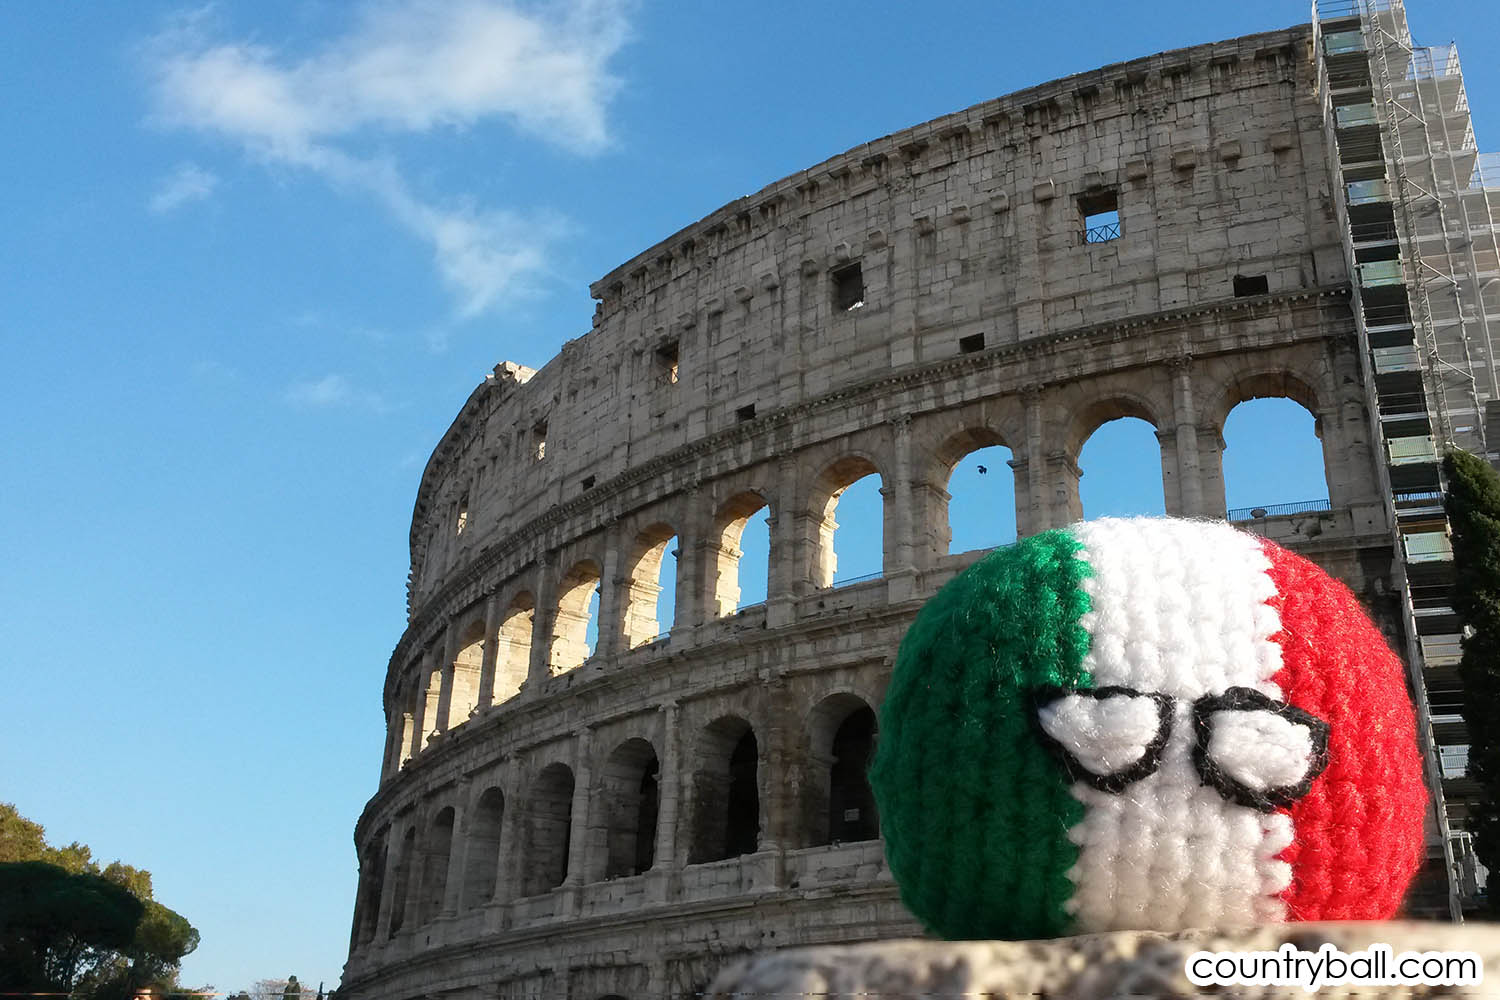 Italyball at the Colosseum